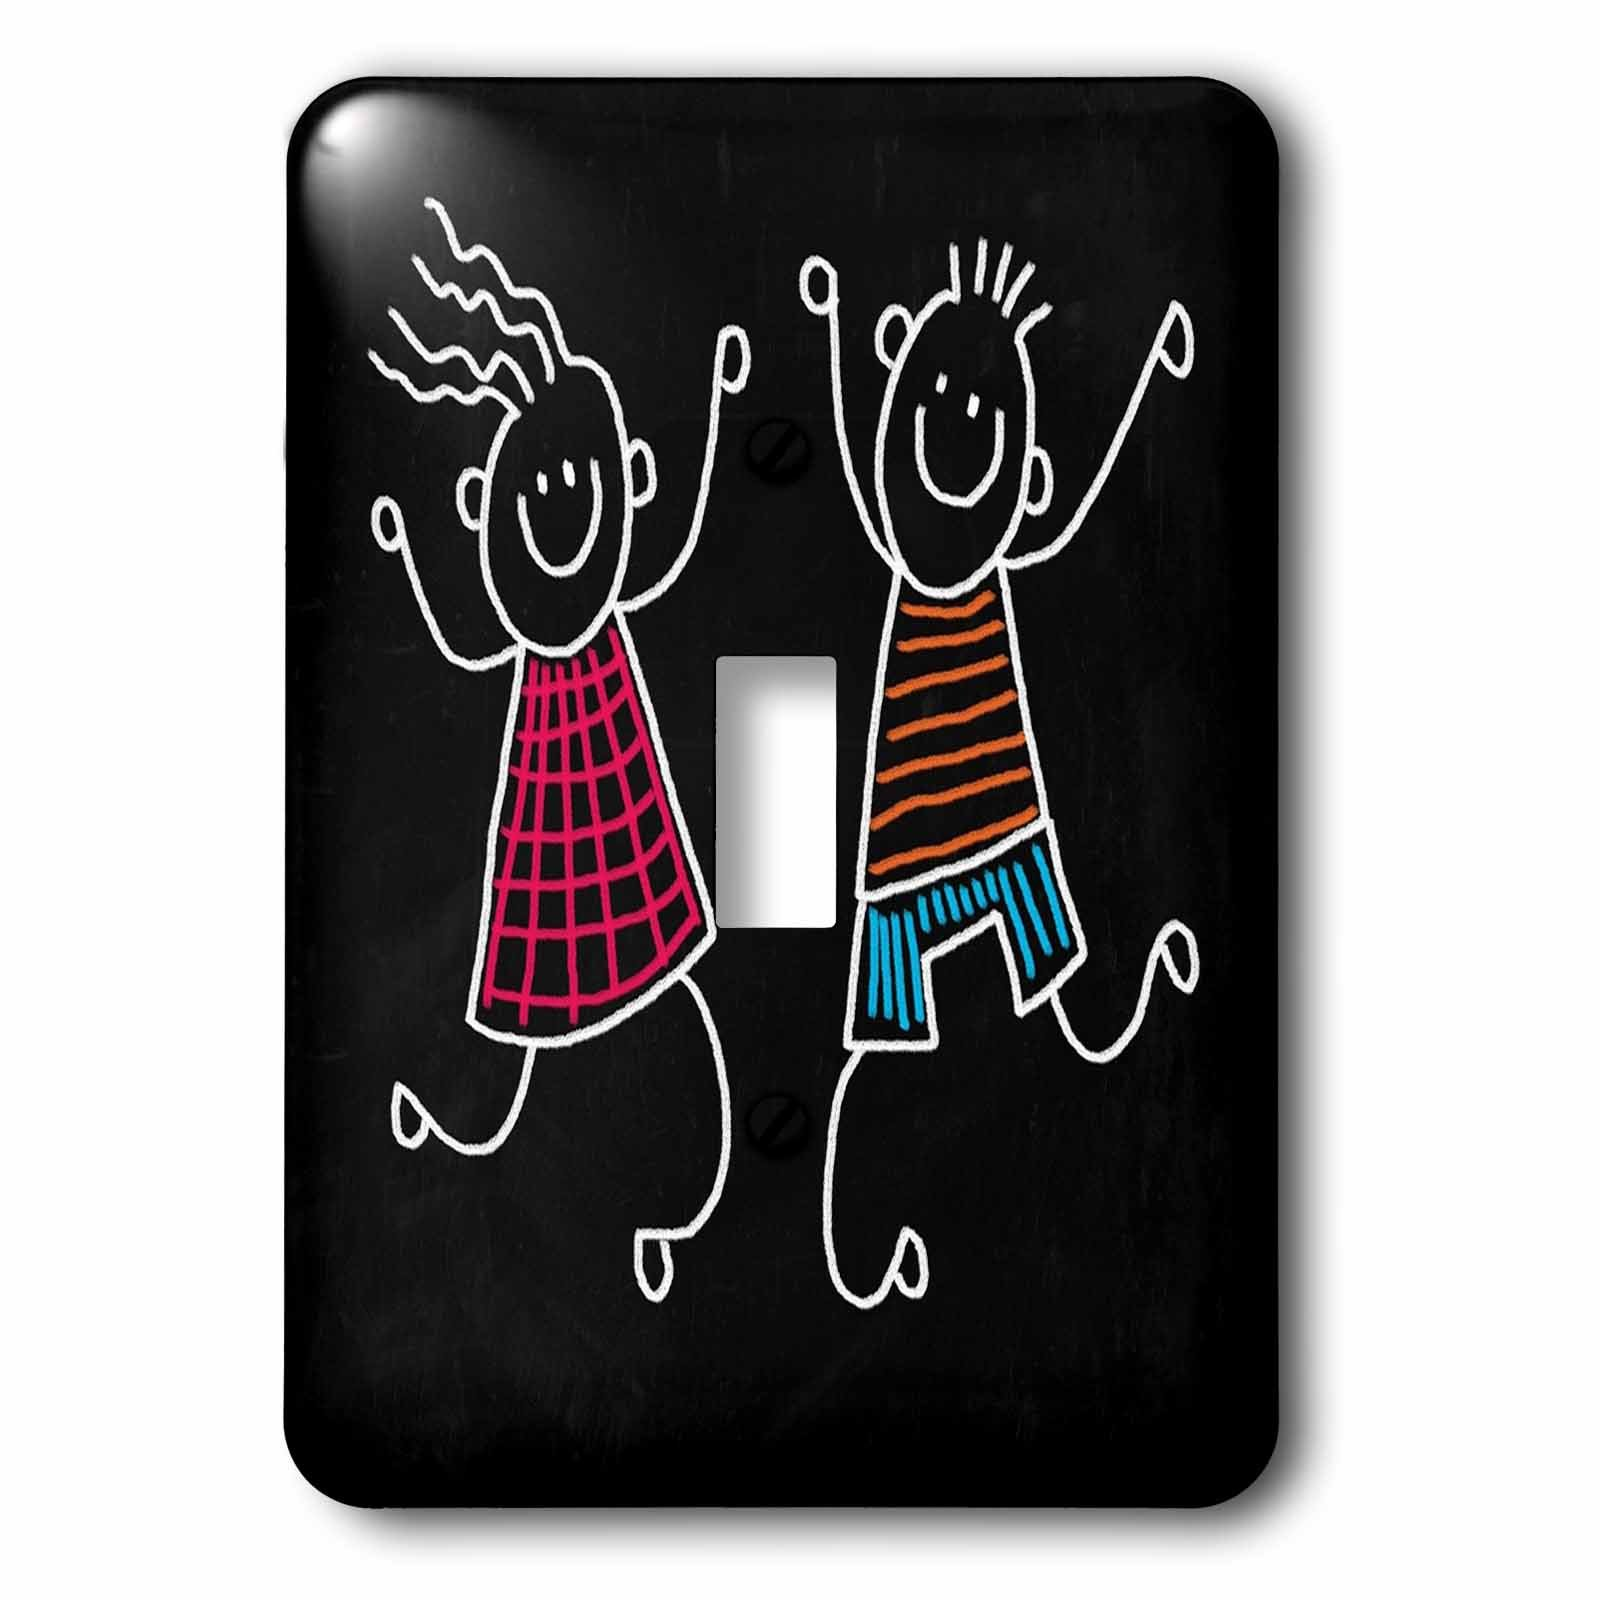 3dRose Florene Childrens Art V - Image Of Painting of Boy and Girl On Chalkboard - Light Switch Covers - single toggle switch (lsp_255317_1)